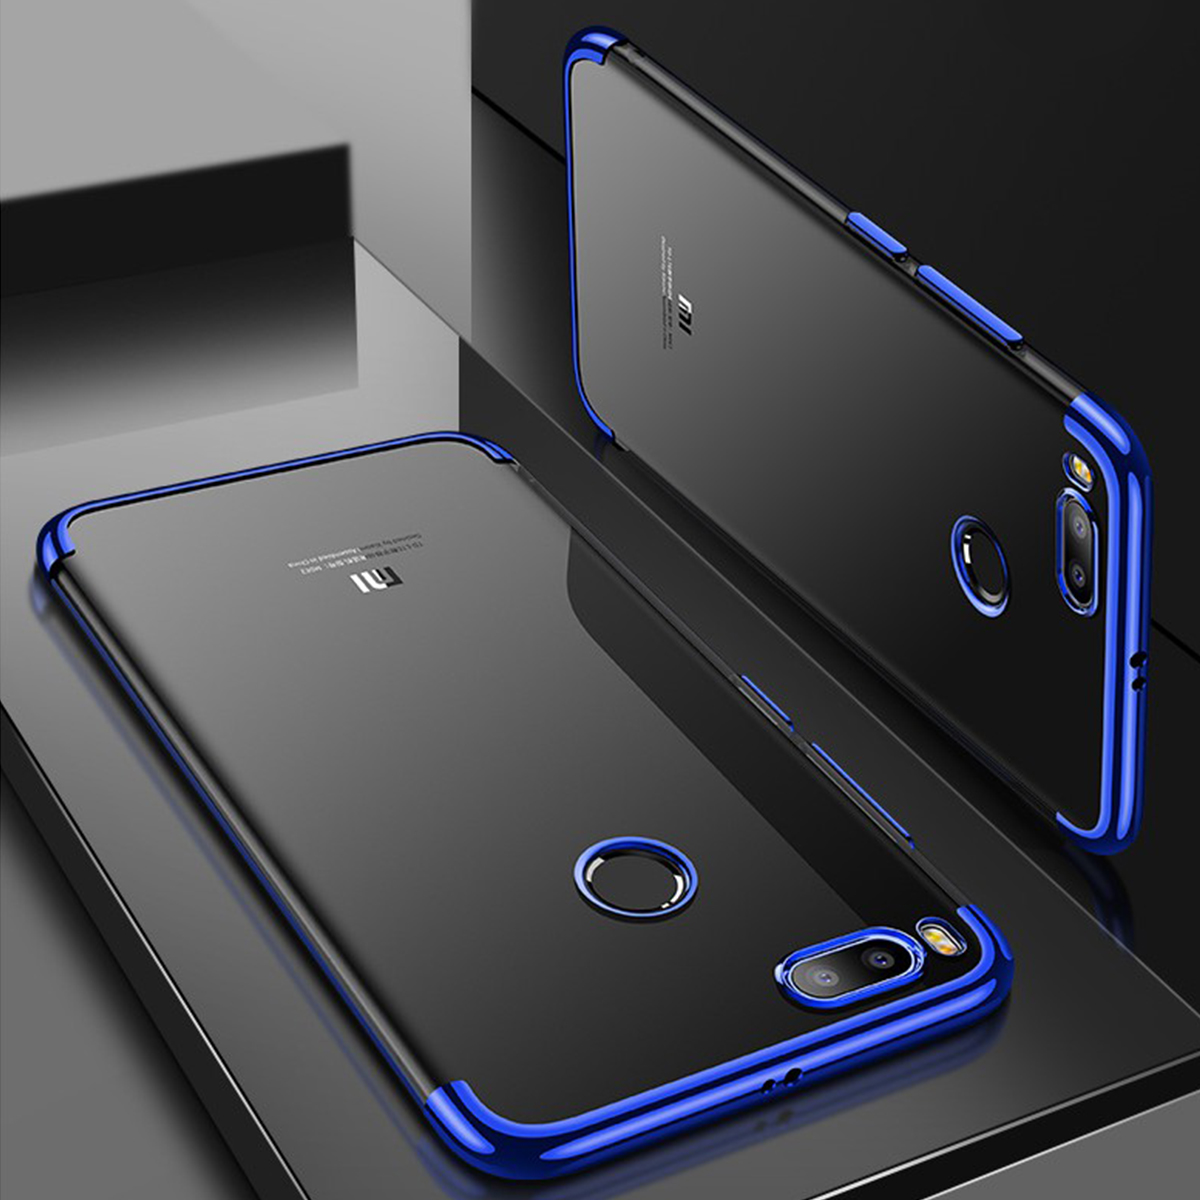 Electroplated Plating Case For Xiaomi Redmi Note 4, Redmi 4x